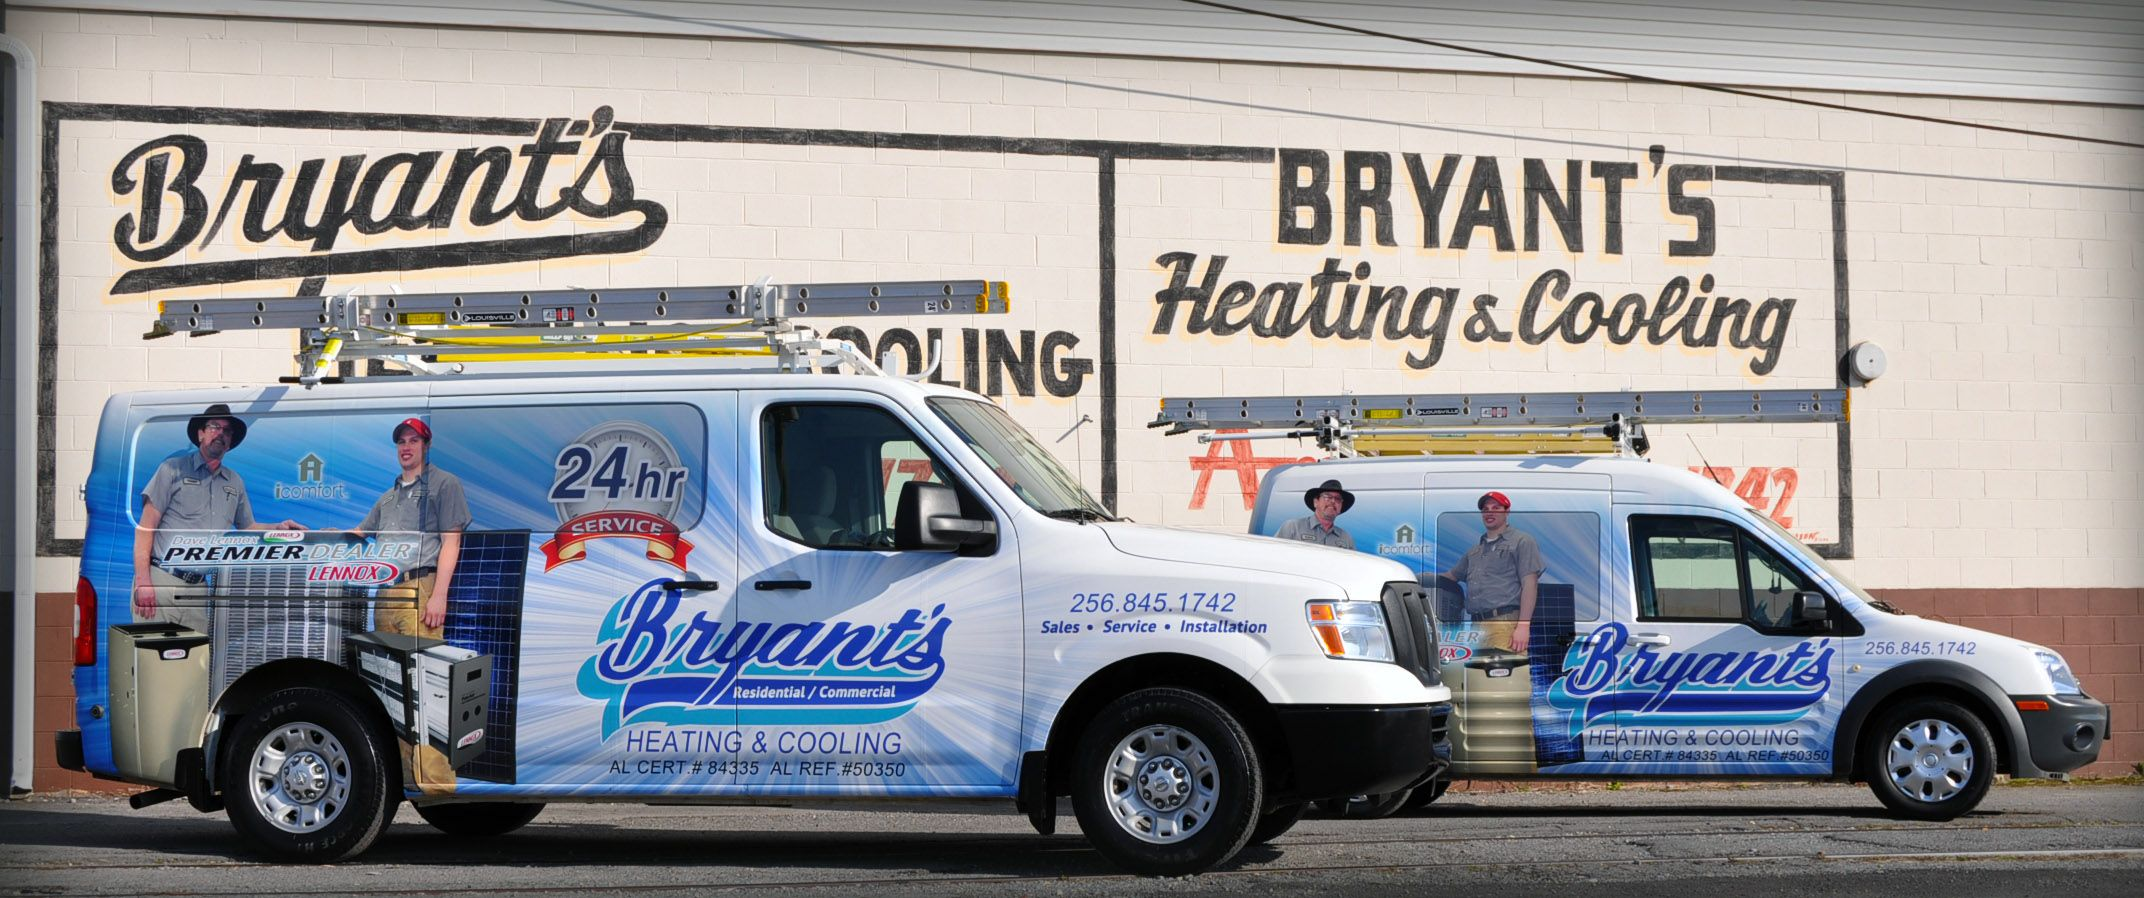 2 Of Bryant S Service Trucks With Images Fleet Heating And